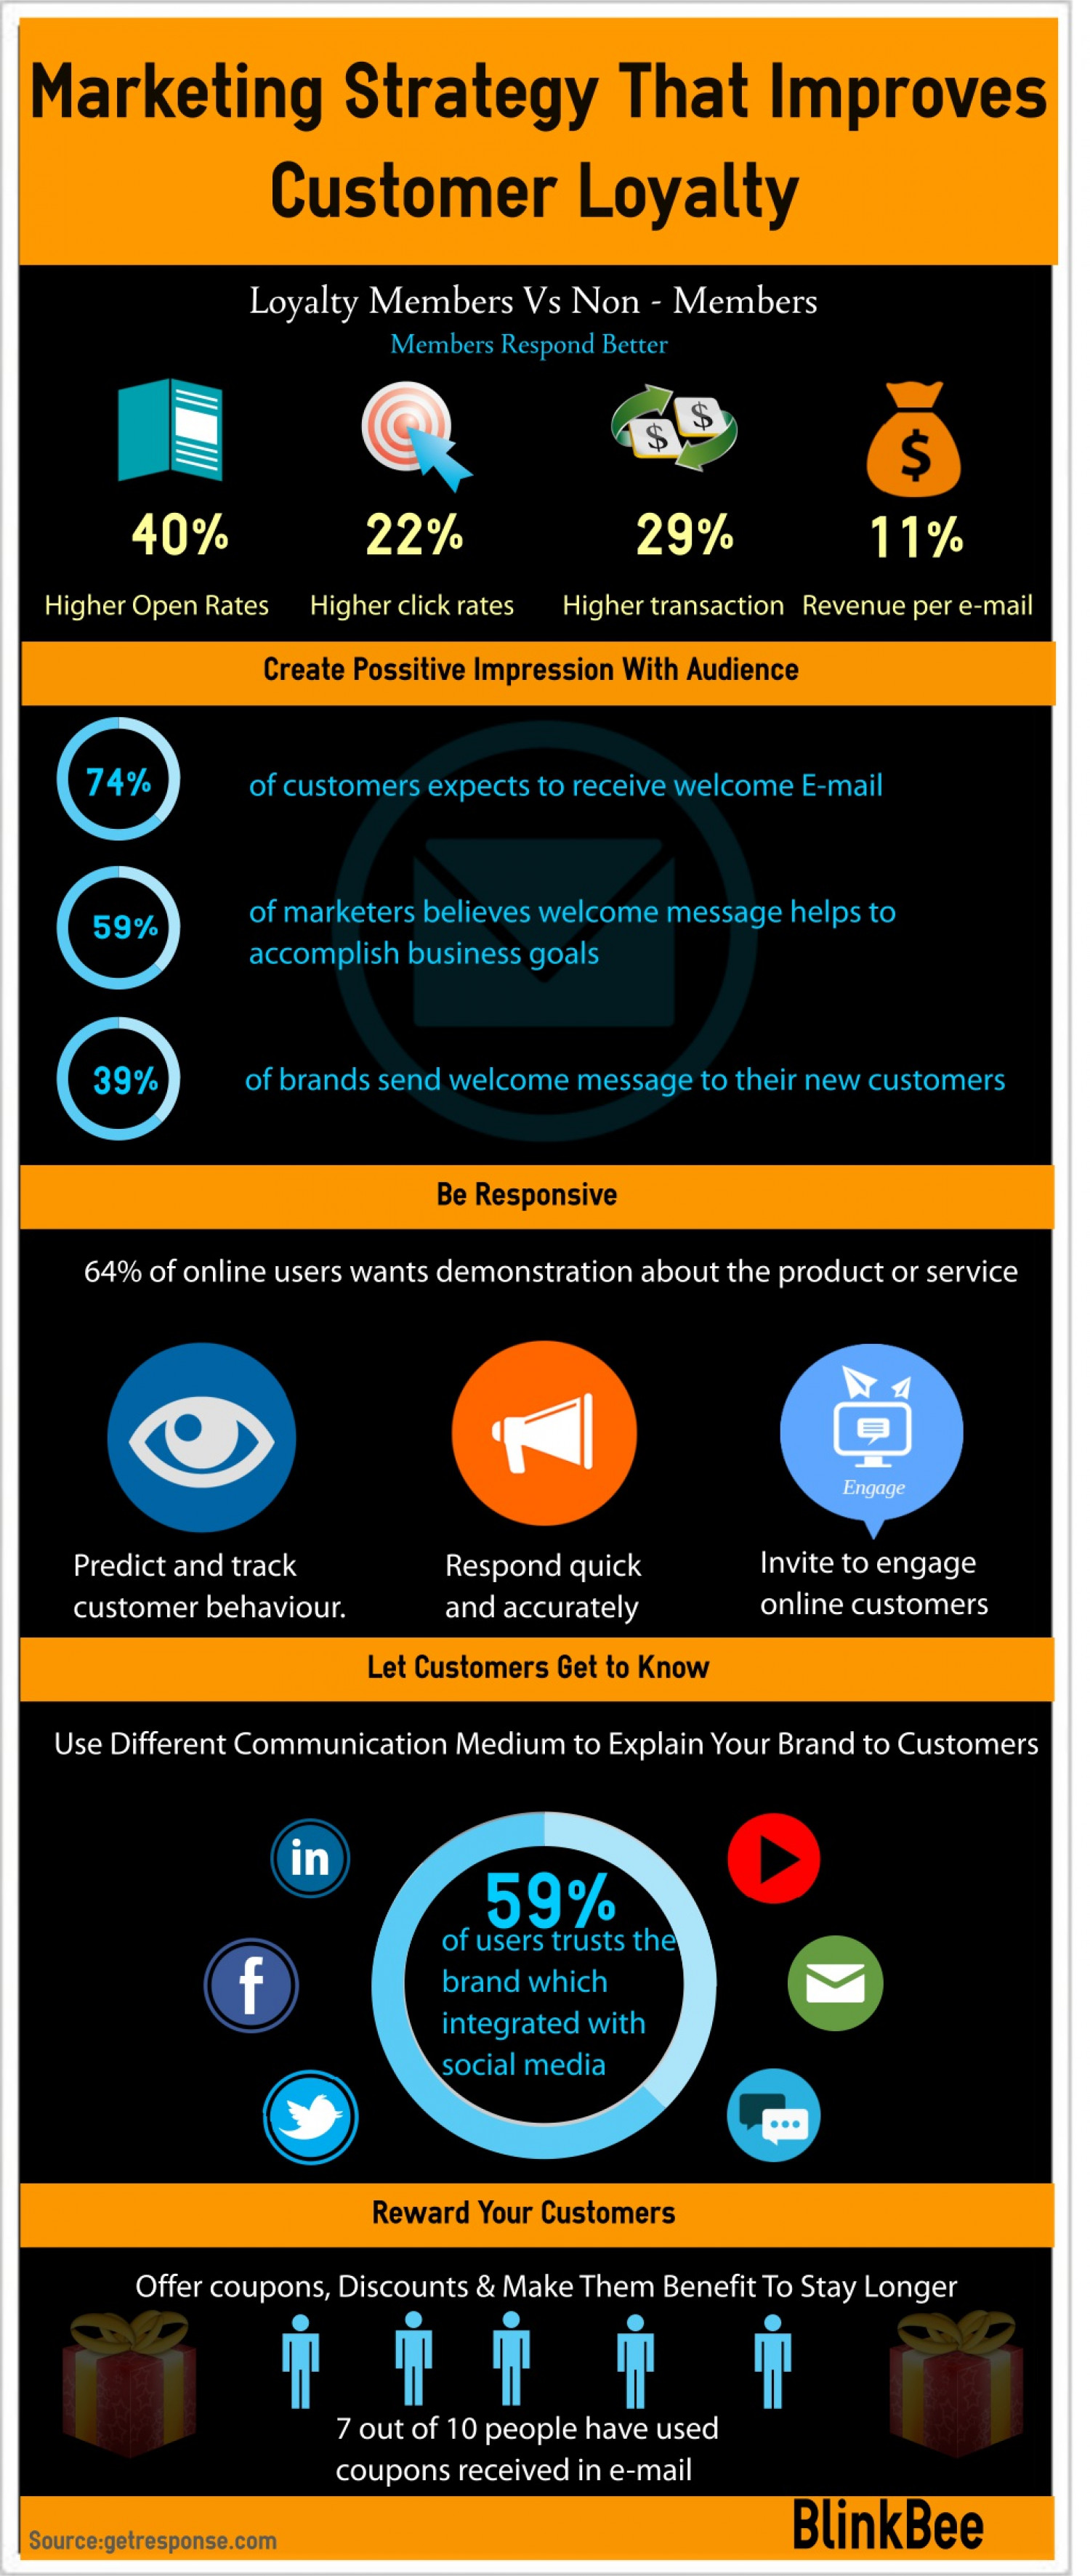 Marketing Strategy That Improves Customer Loyalty Infographic